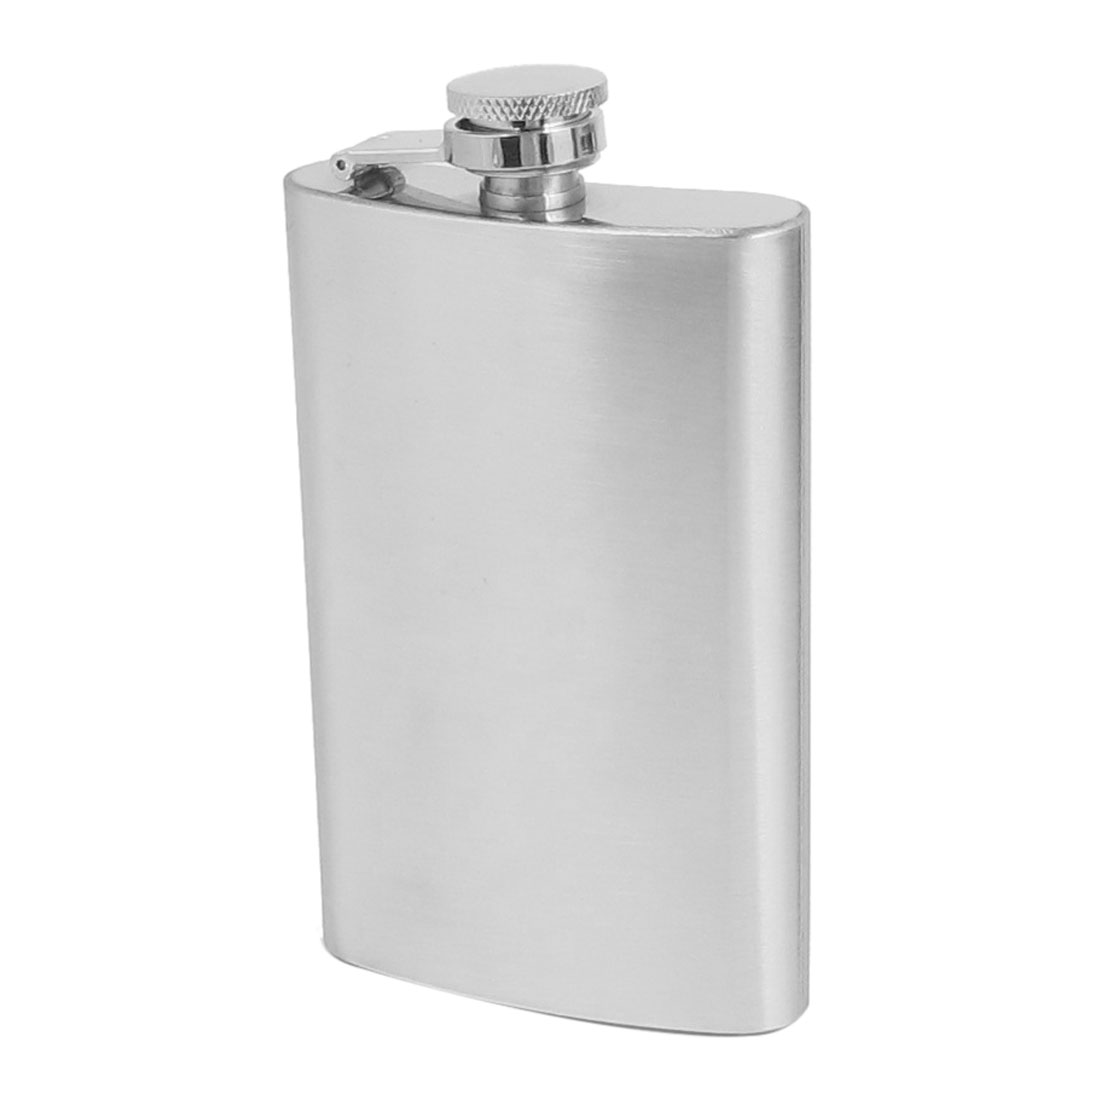 Silver Tone Stainless Steel Whisky Wine Liquor Container Holder Pocket Hip Flask 150ML 5 Oz Capacity